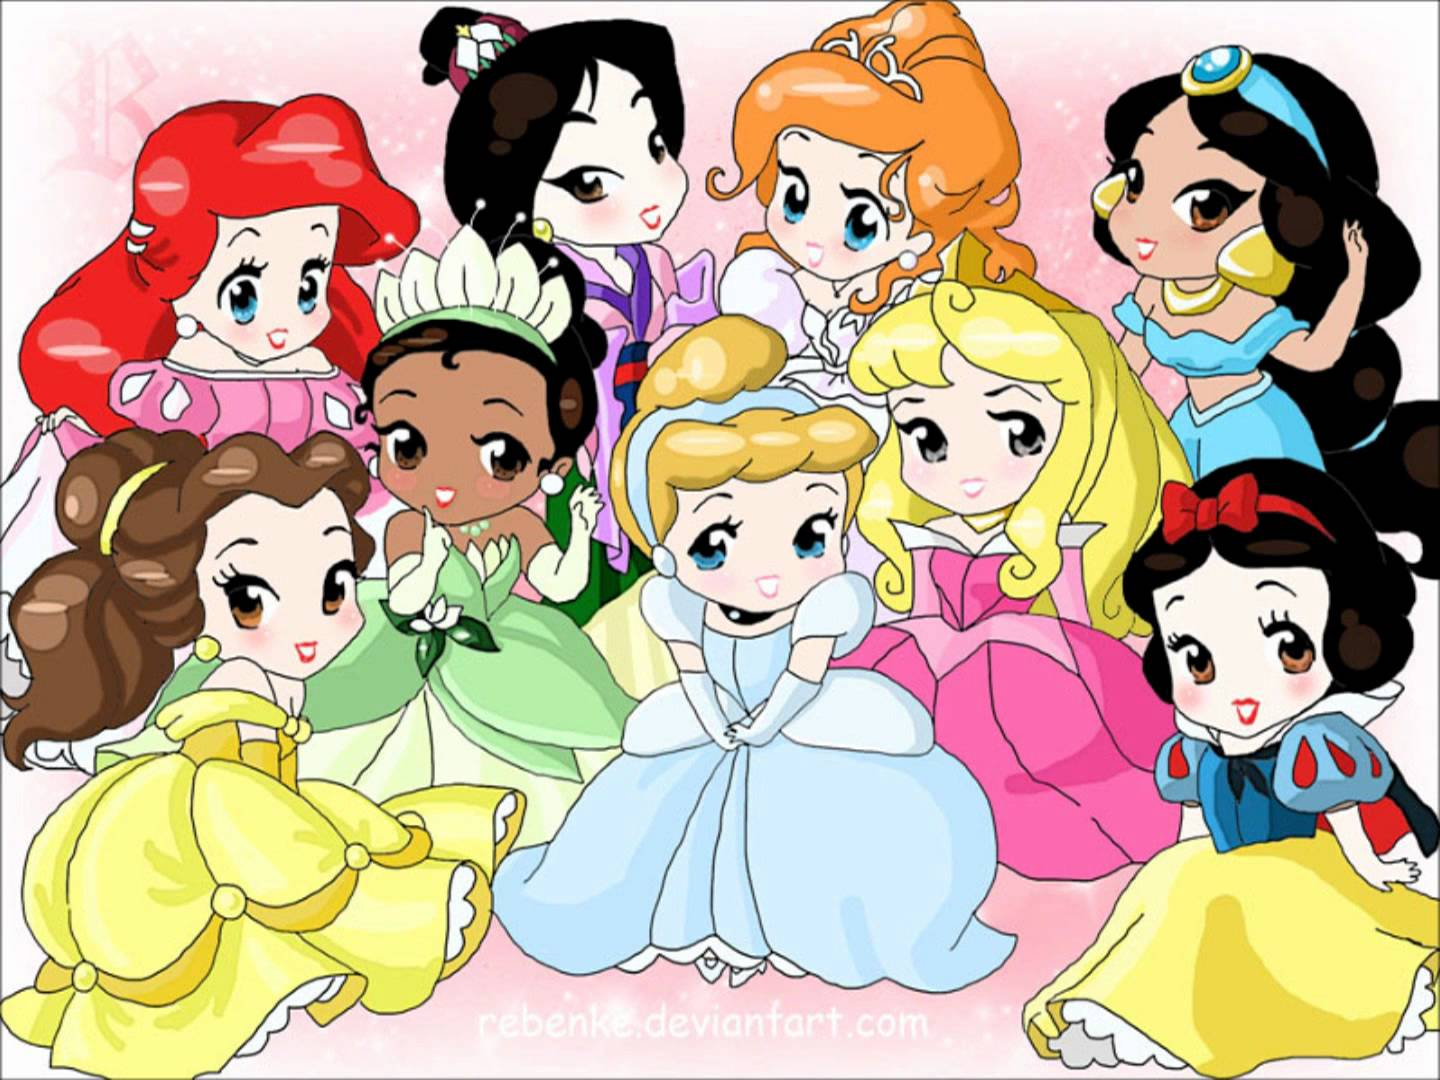 Princess coloring pages youtube - Princess Coloring Pages Youtube 21